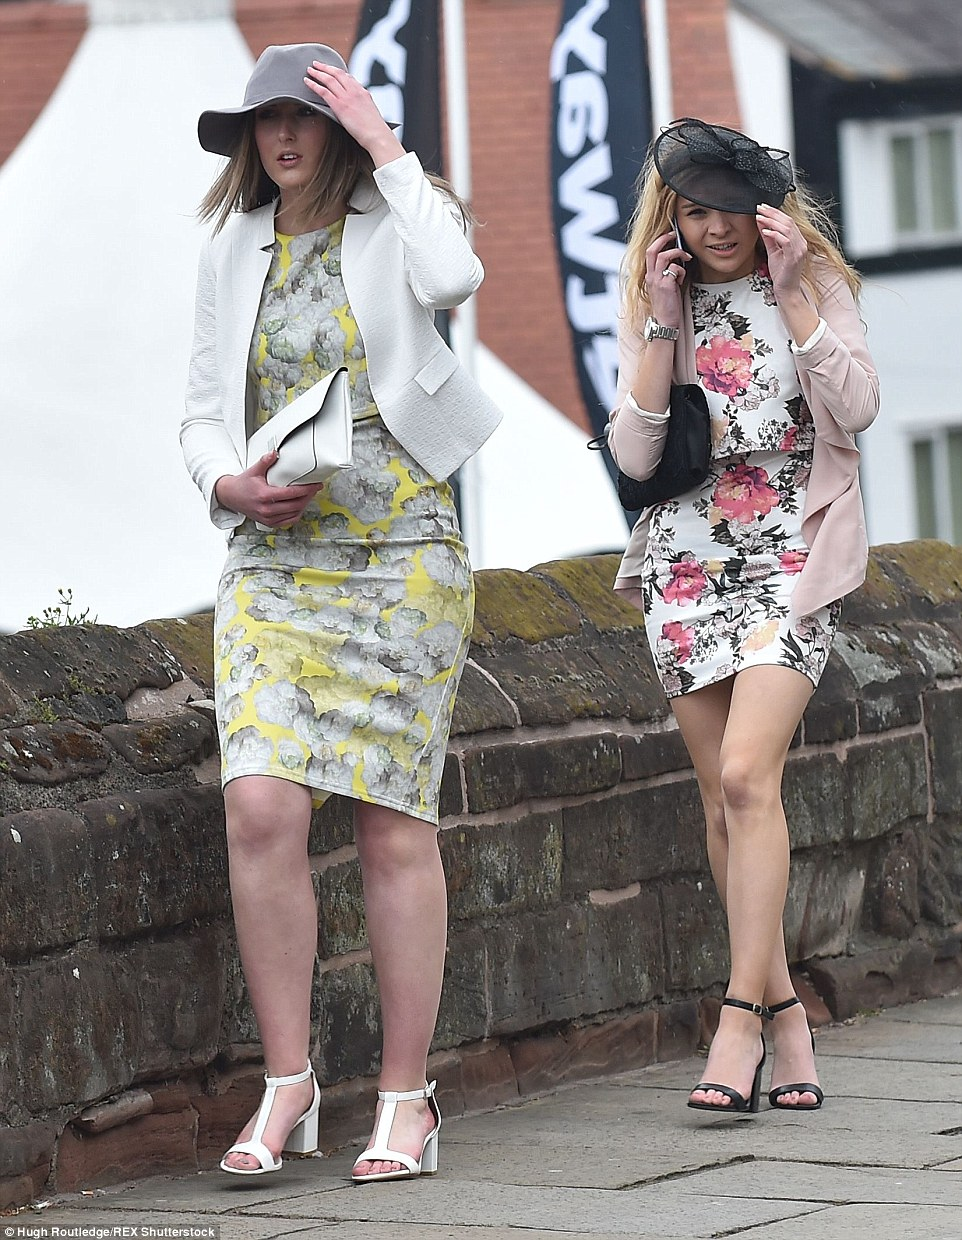 These ladies were holding their hats down before they had even entered the racecourse area